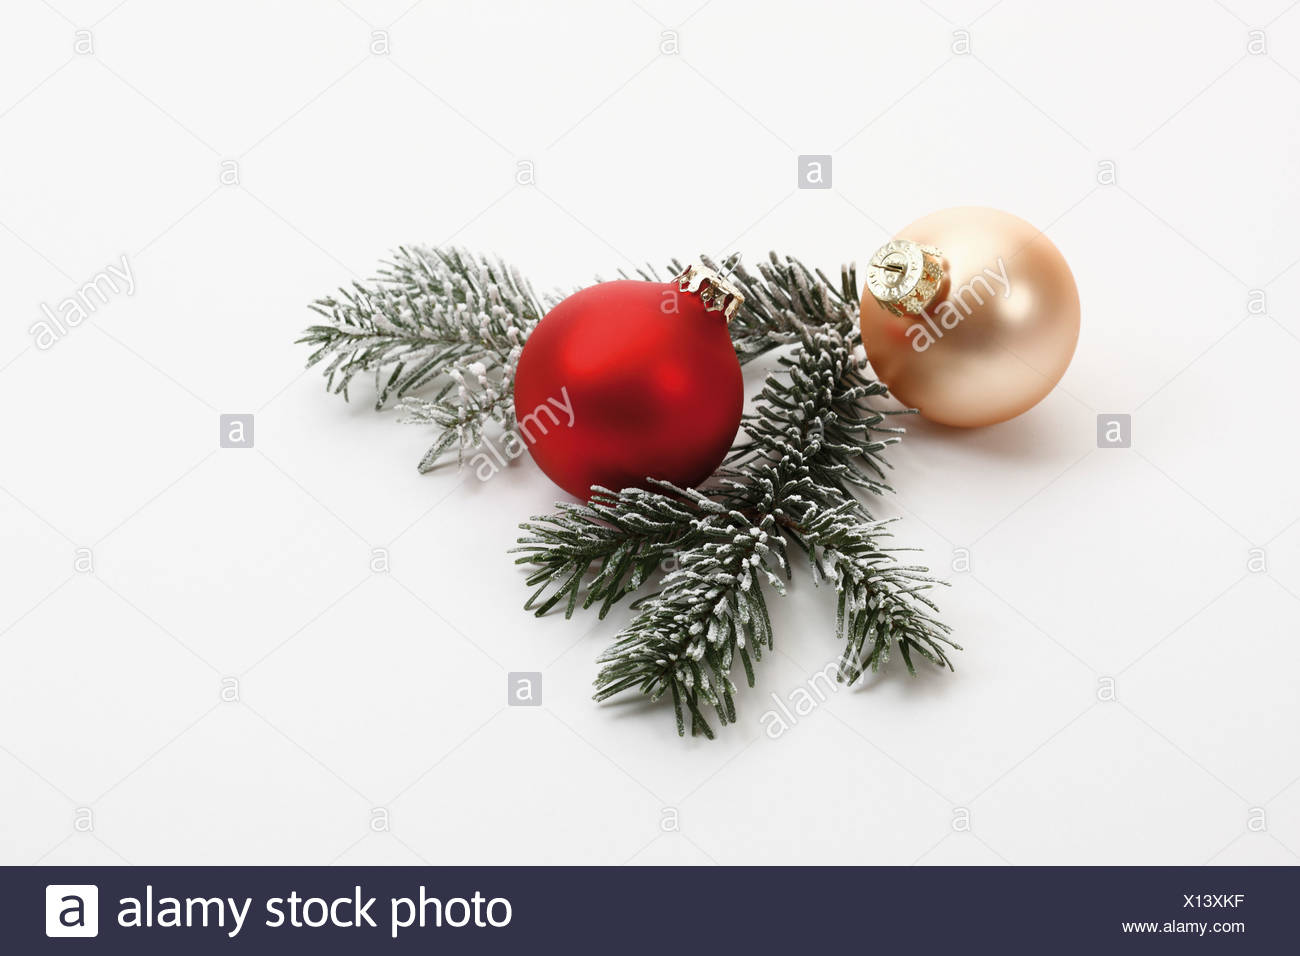 Christmas decoration, Christmas baubles and fir twig - Stock Image